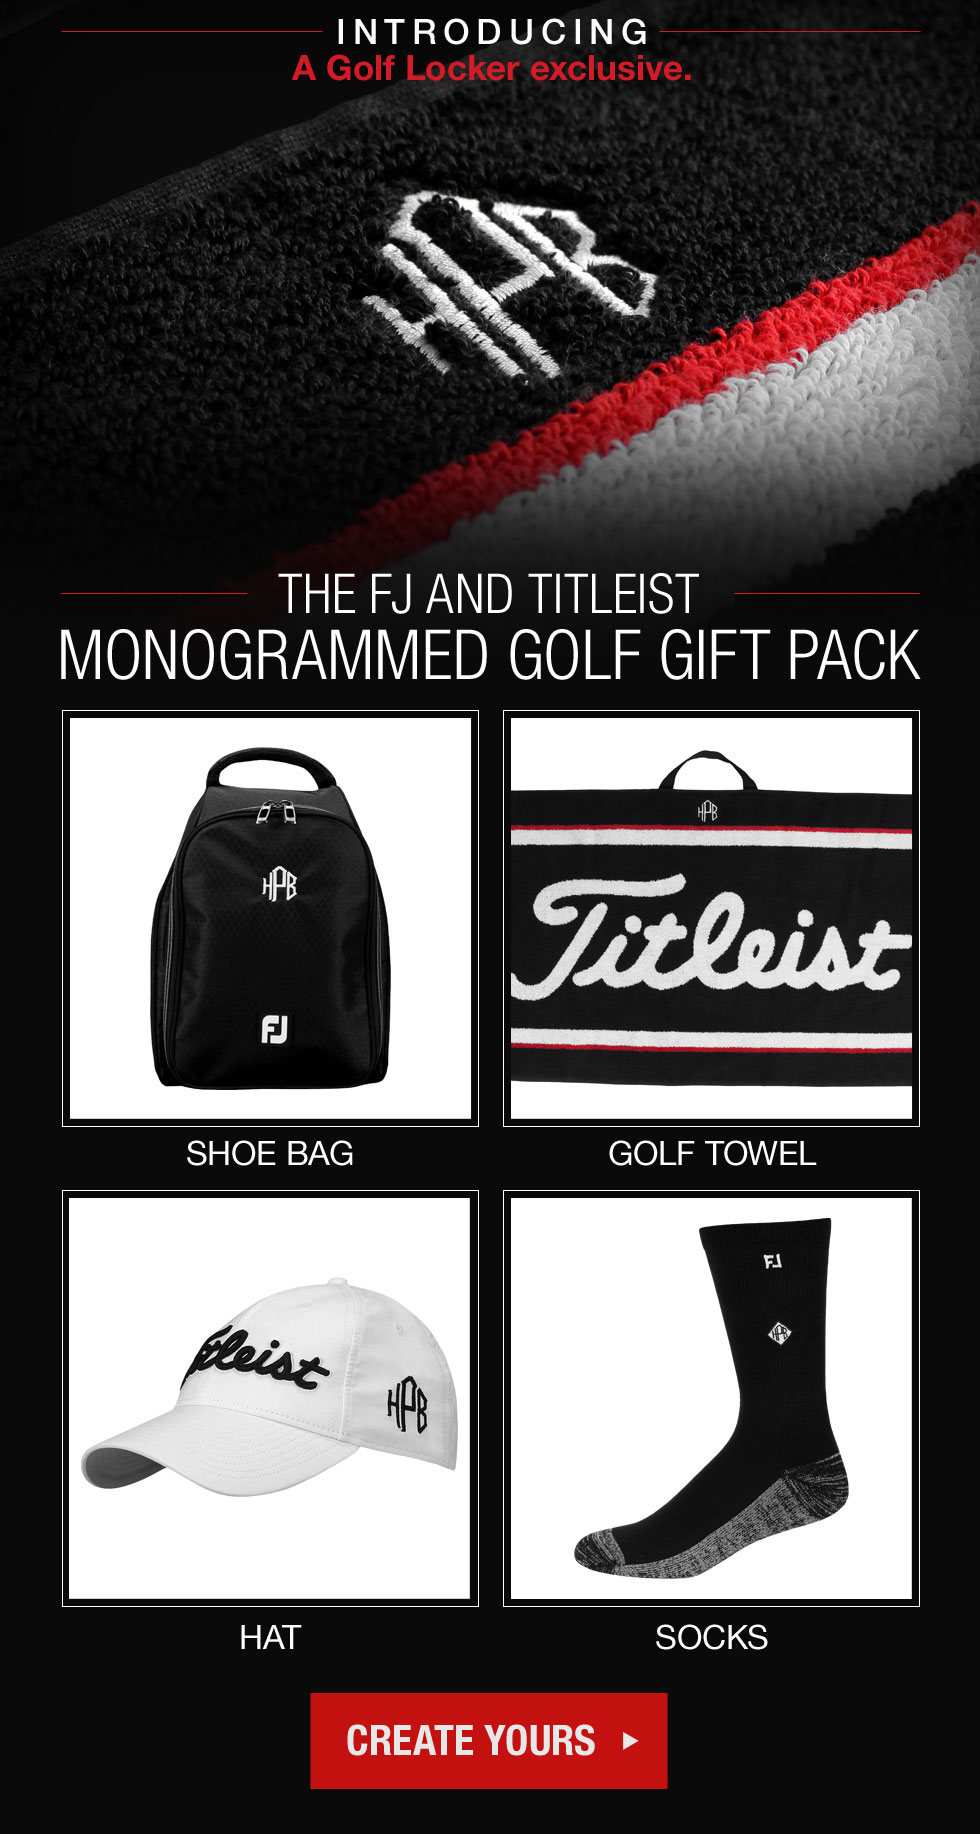 11-06 The Titleist and FJ Monogrammed Gift Pack - a Golf Locker Exclusive.